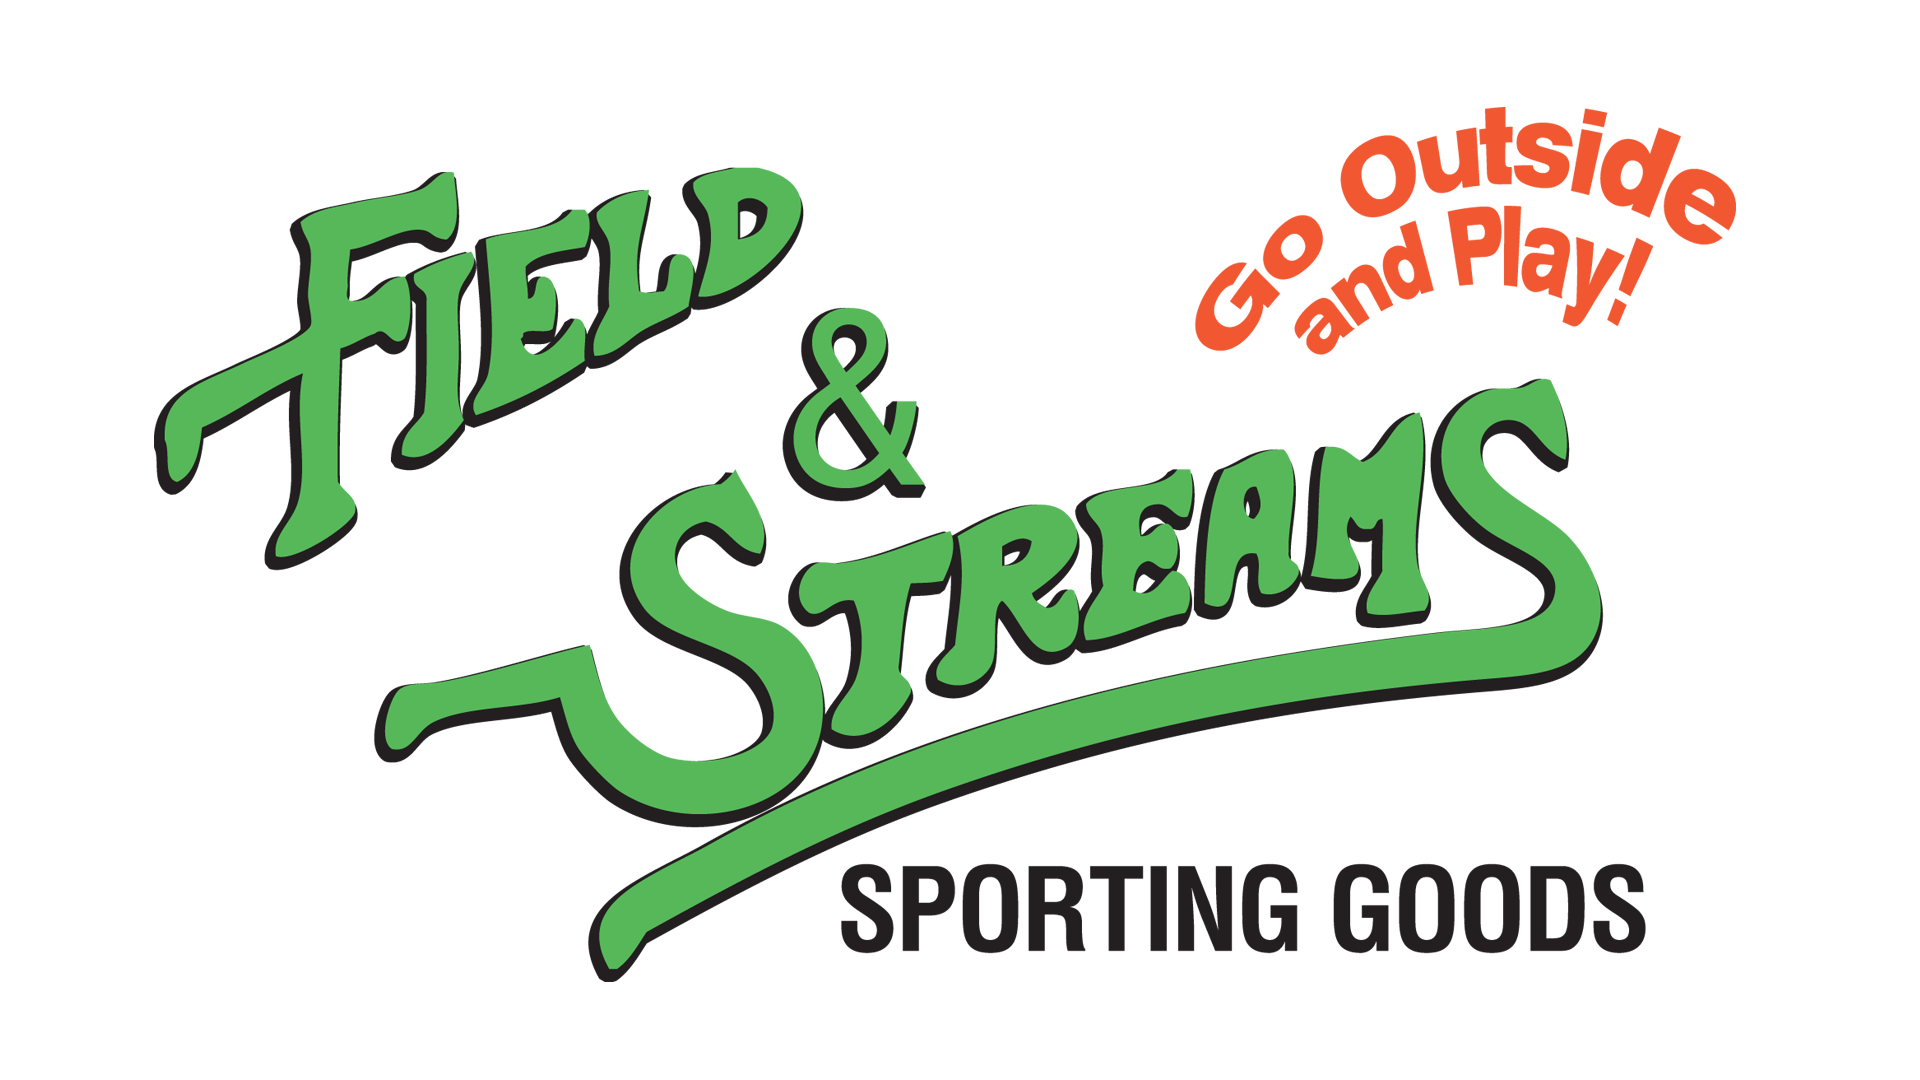 Field and Streams Sporting Goods